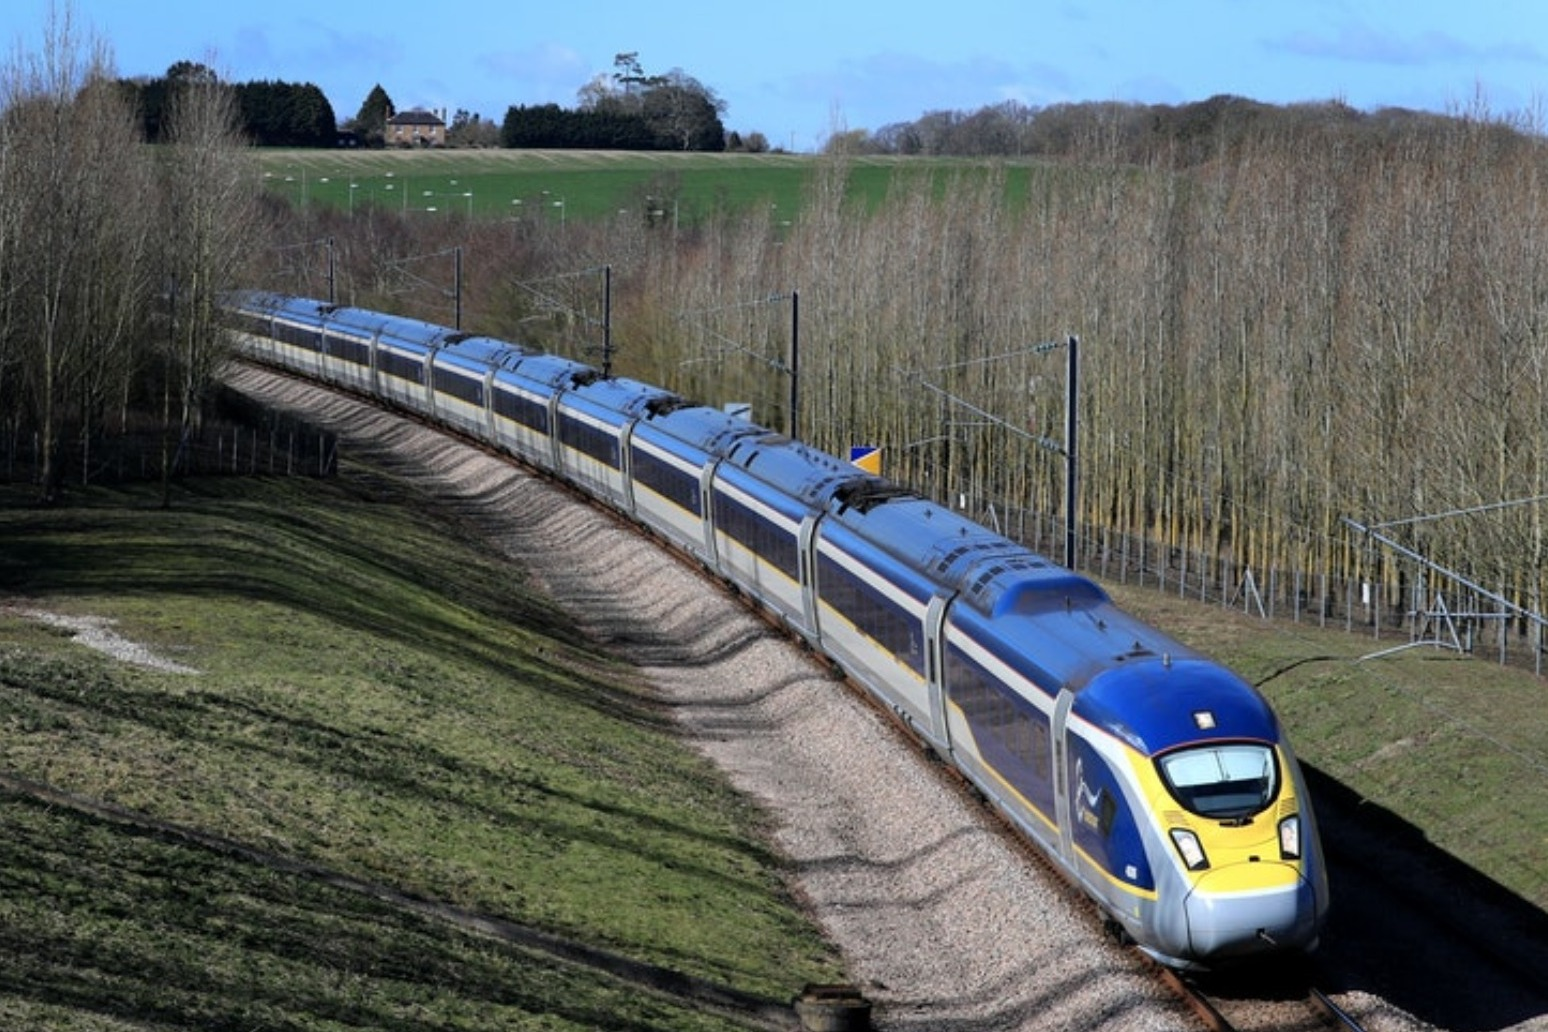 Ministers must act to prevent Eurostar cuts, union boss says